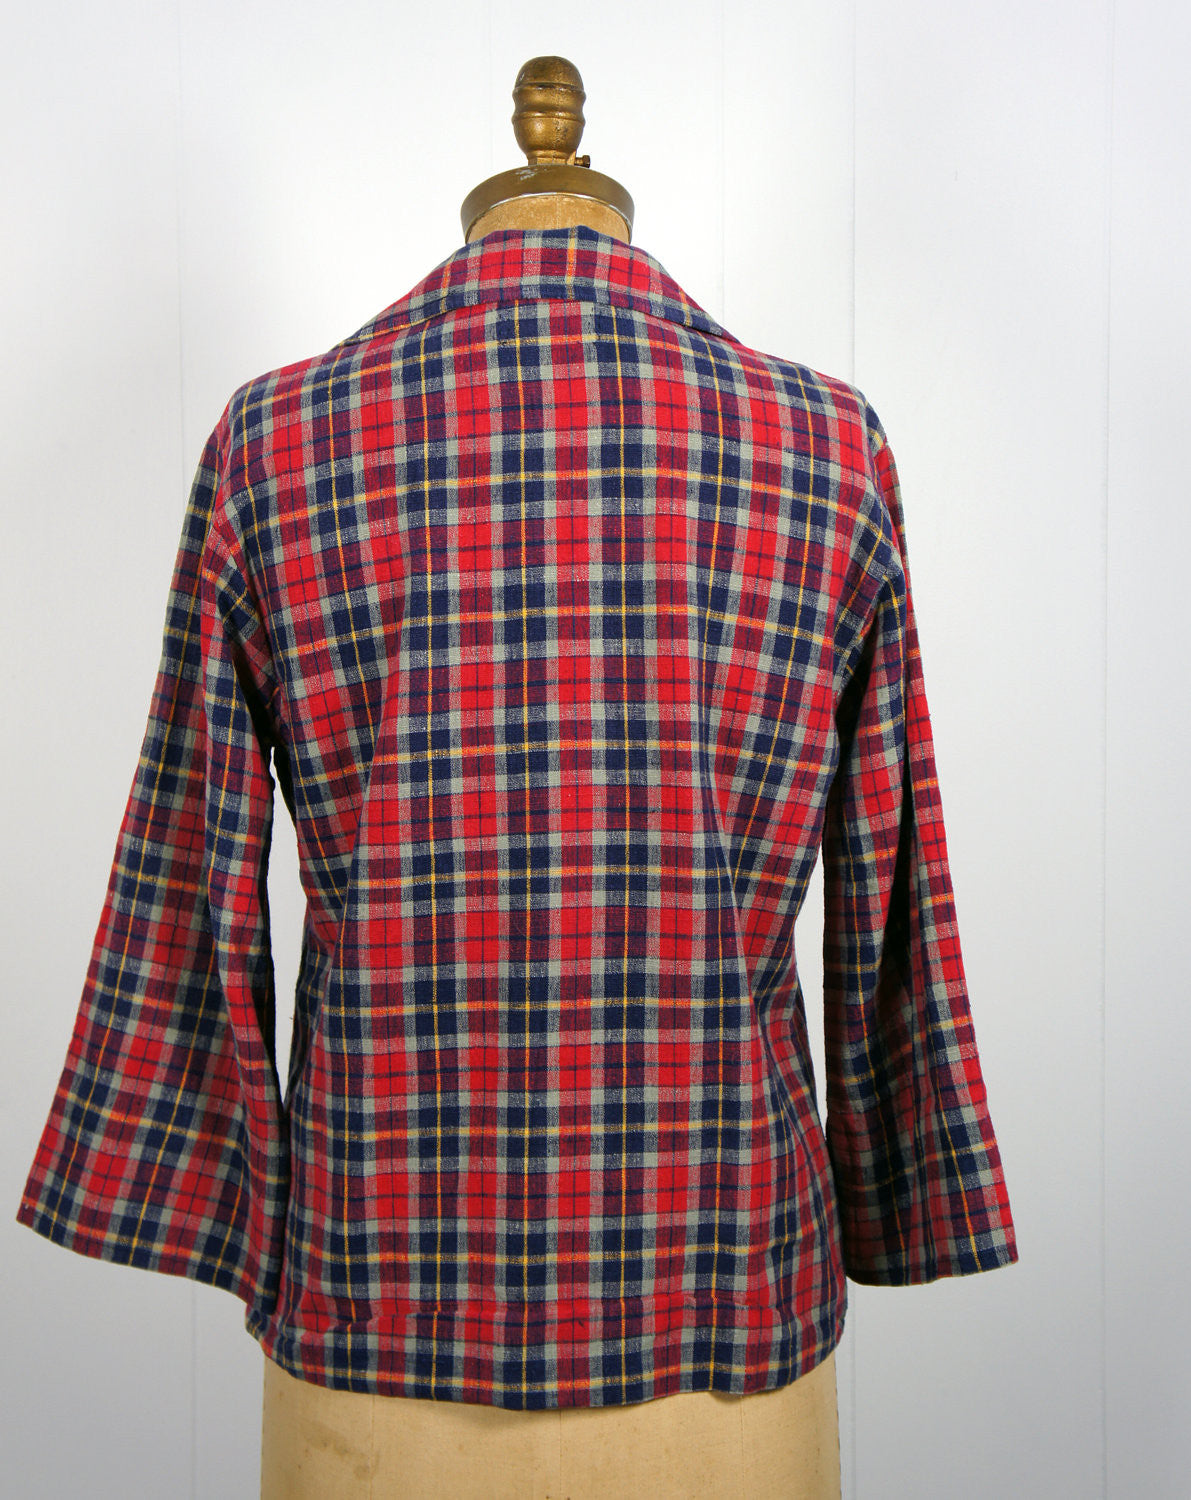 1970's Red, Blue & Yellow Striped Plaid Pullover Shirt, Size M